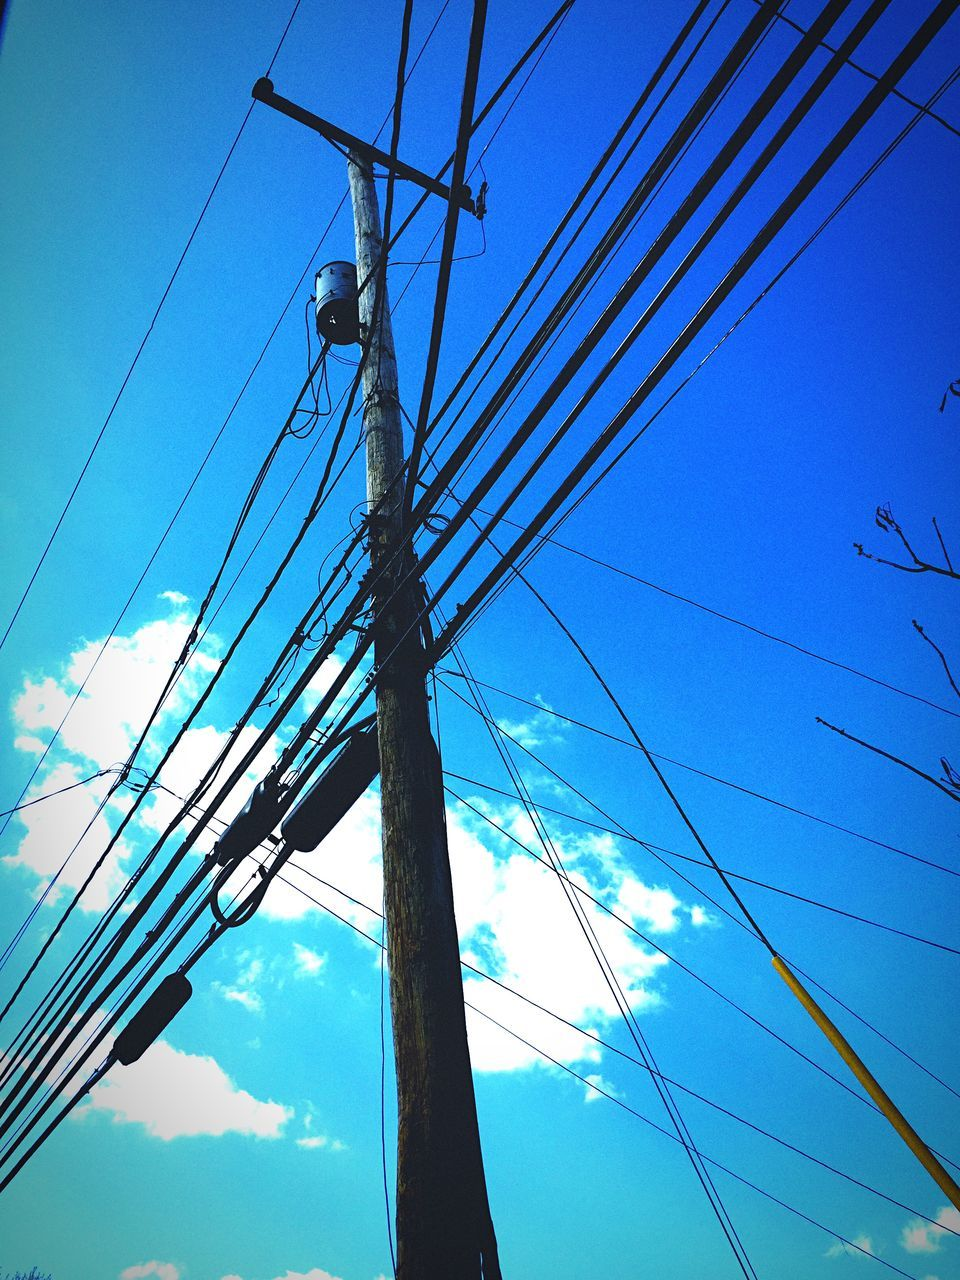 Low Angle View Of Telephone Pole Against Blue Sky